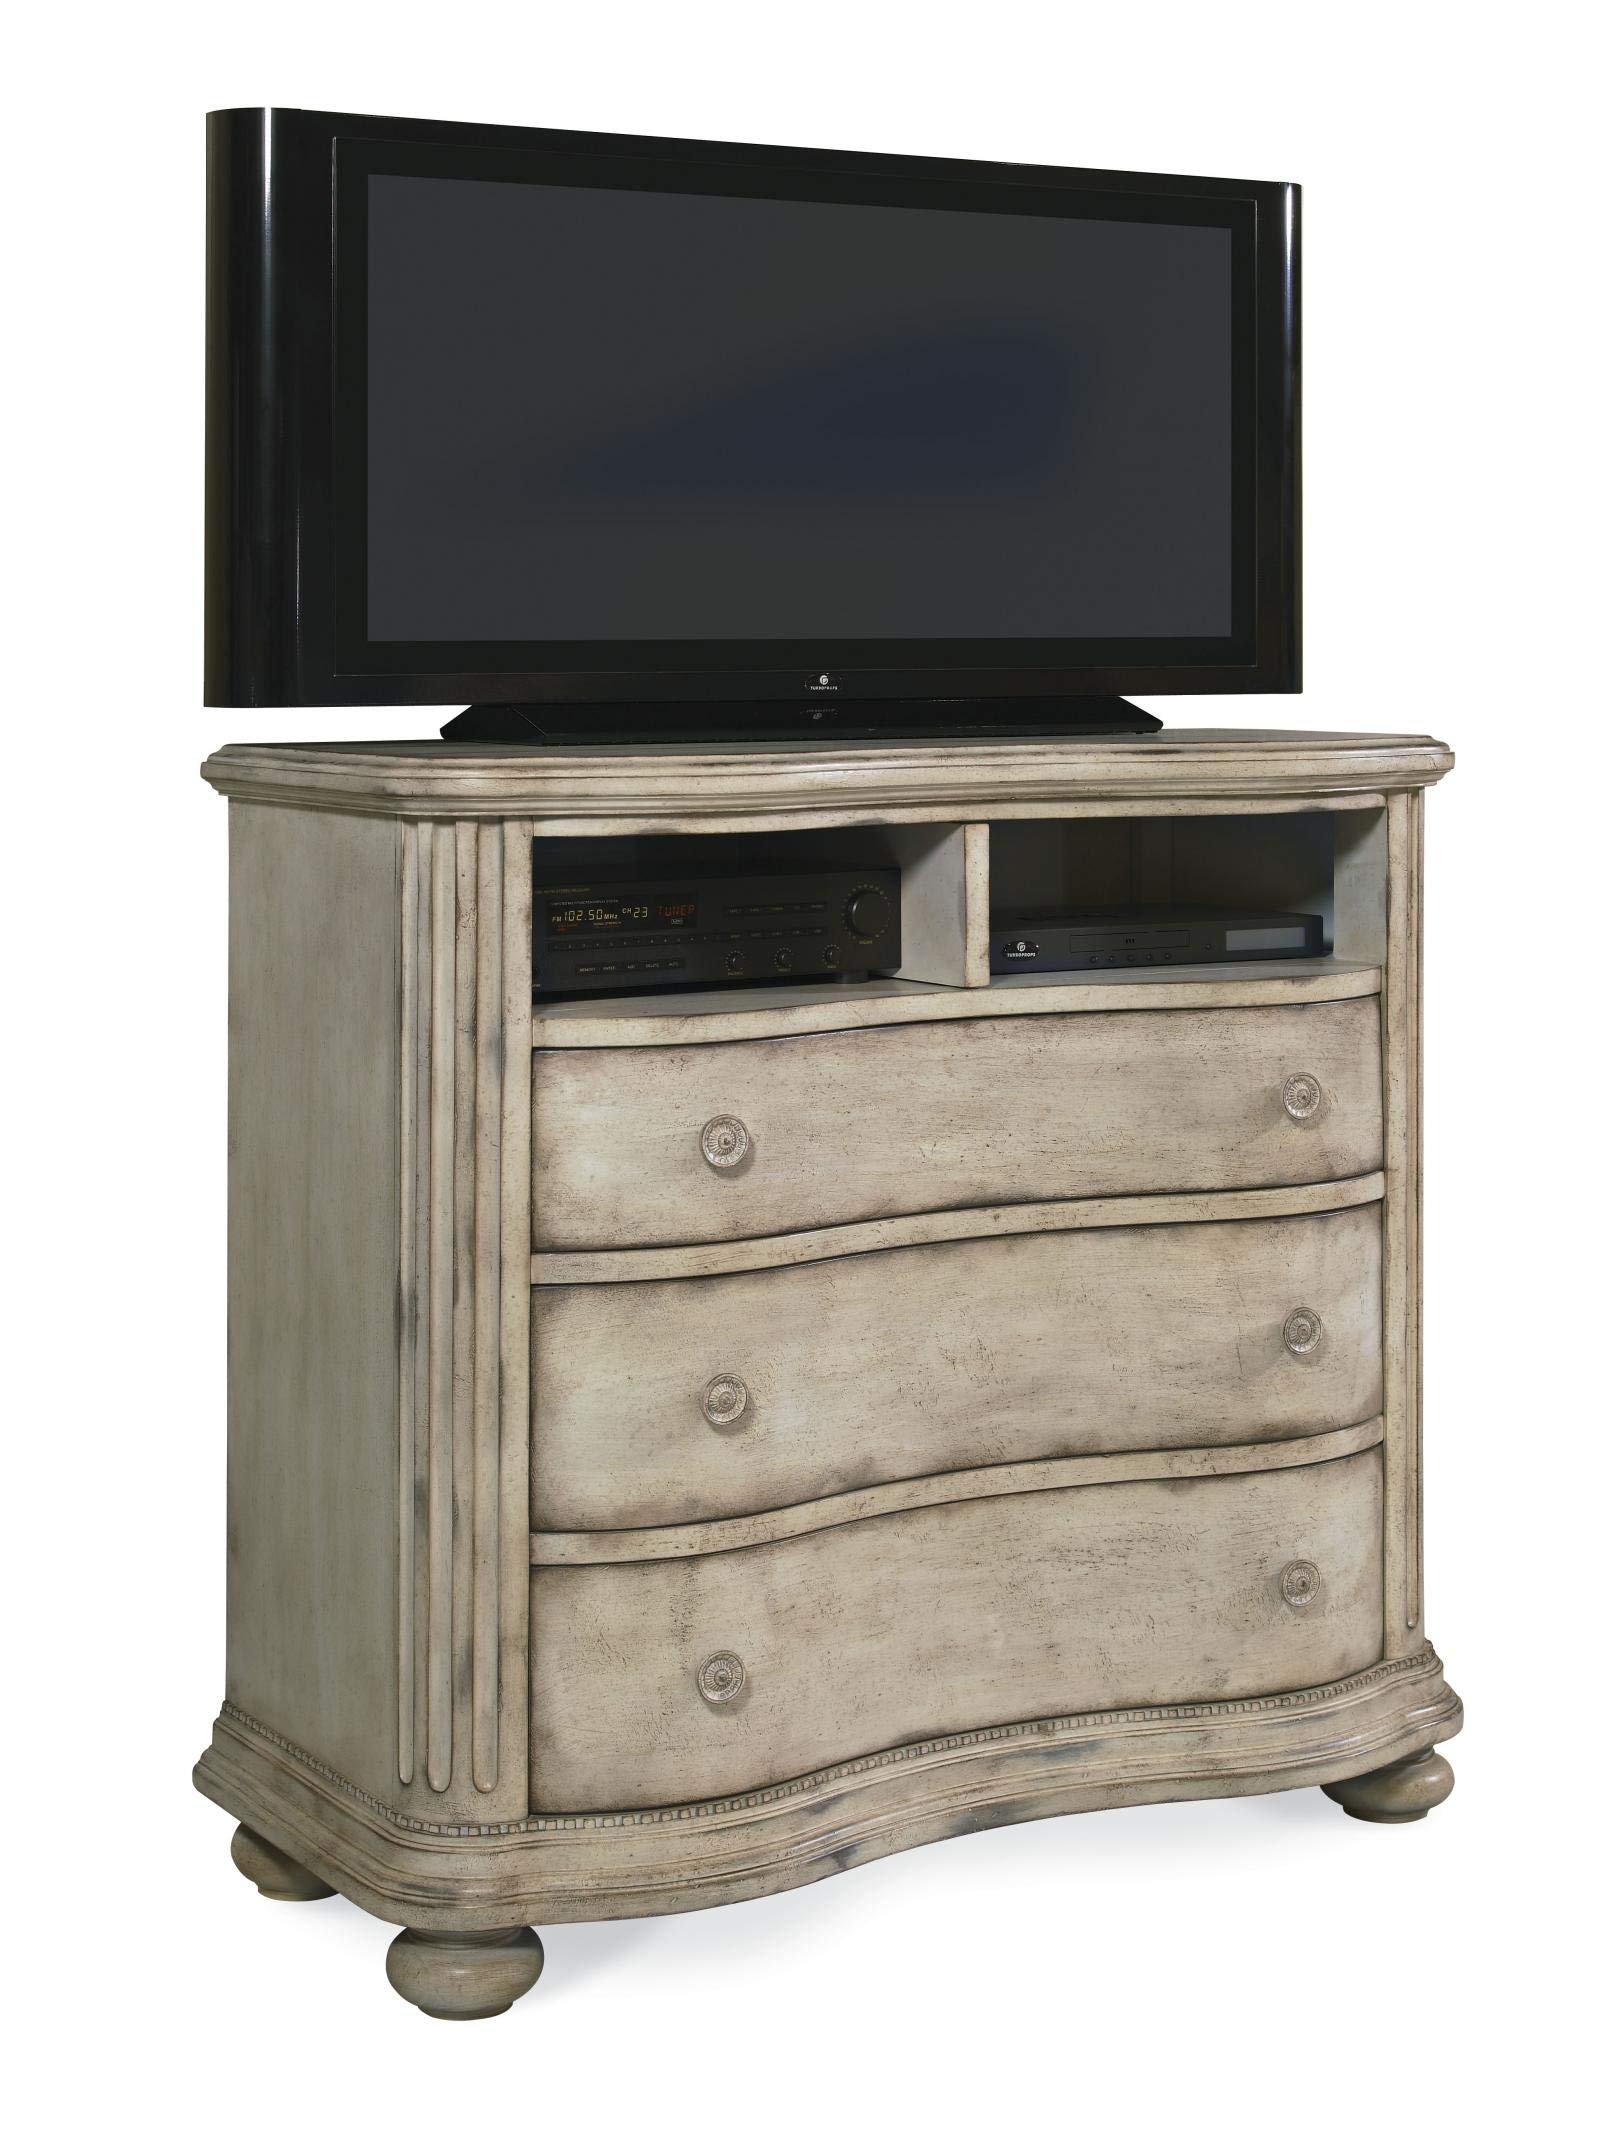 A.R.T. Furniture Belmar New Pine Three Lower Drawers Media Chest by Art, Inc.